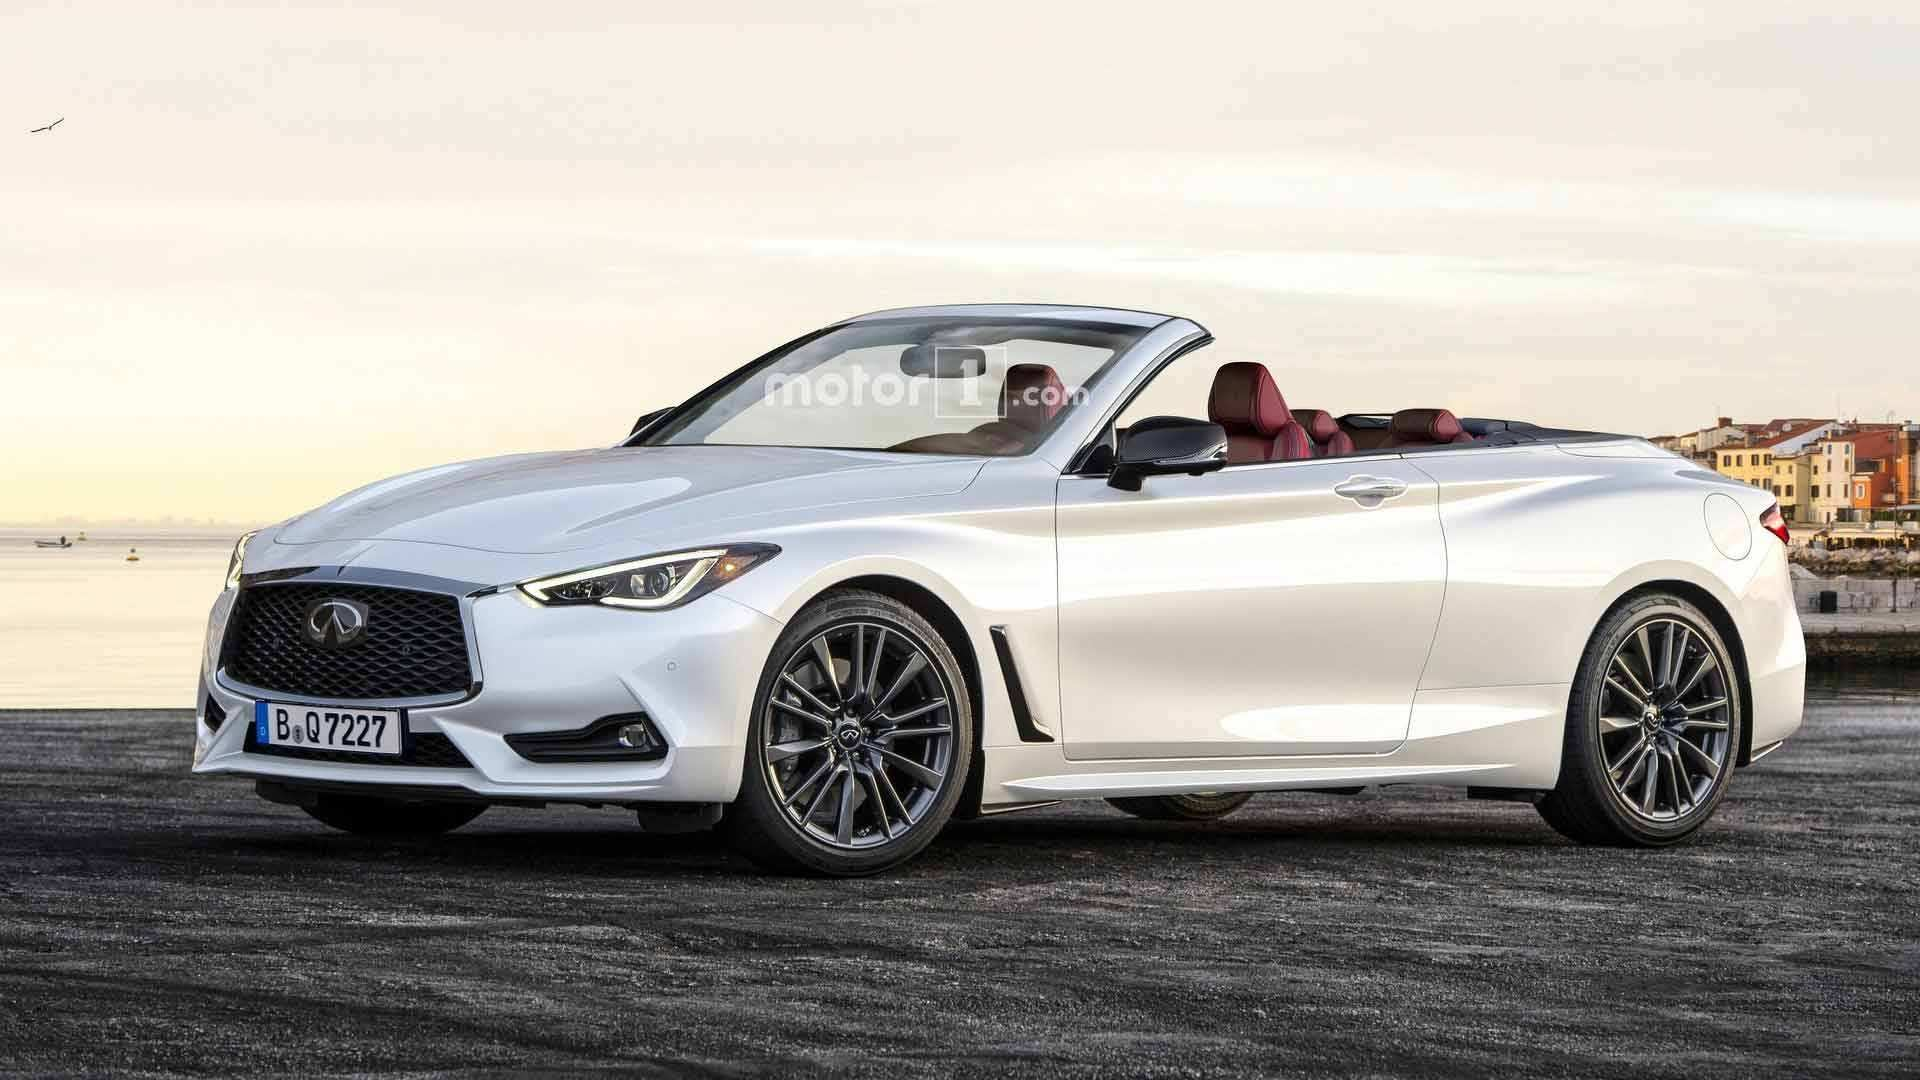 60 Great 2020 Infiniti Convertible Specs by 2020 Infiniti Convertible